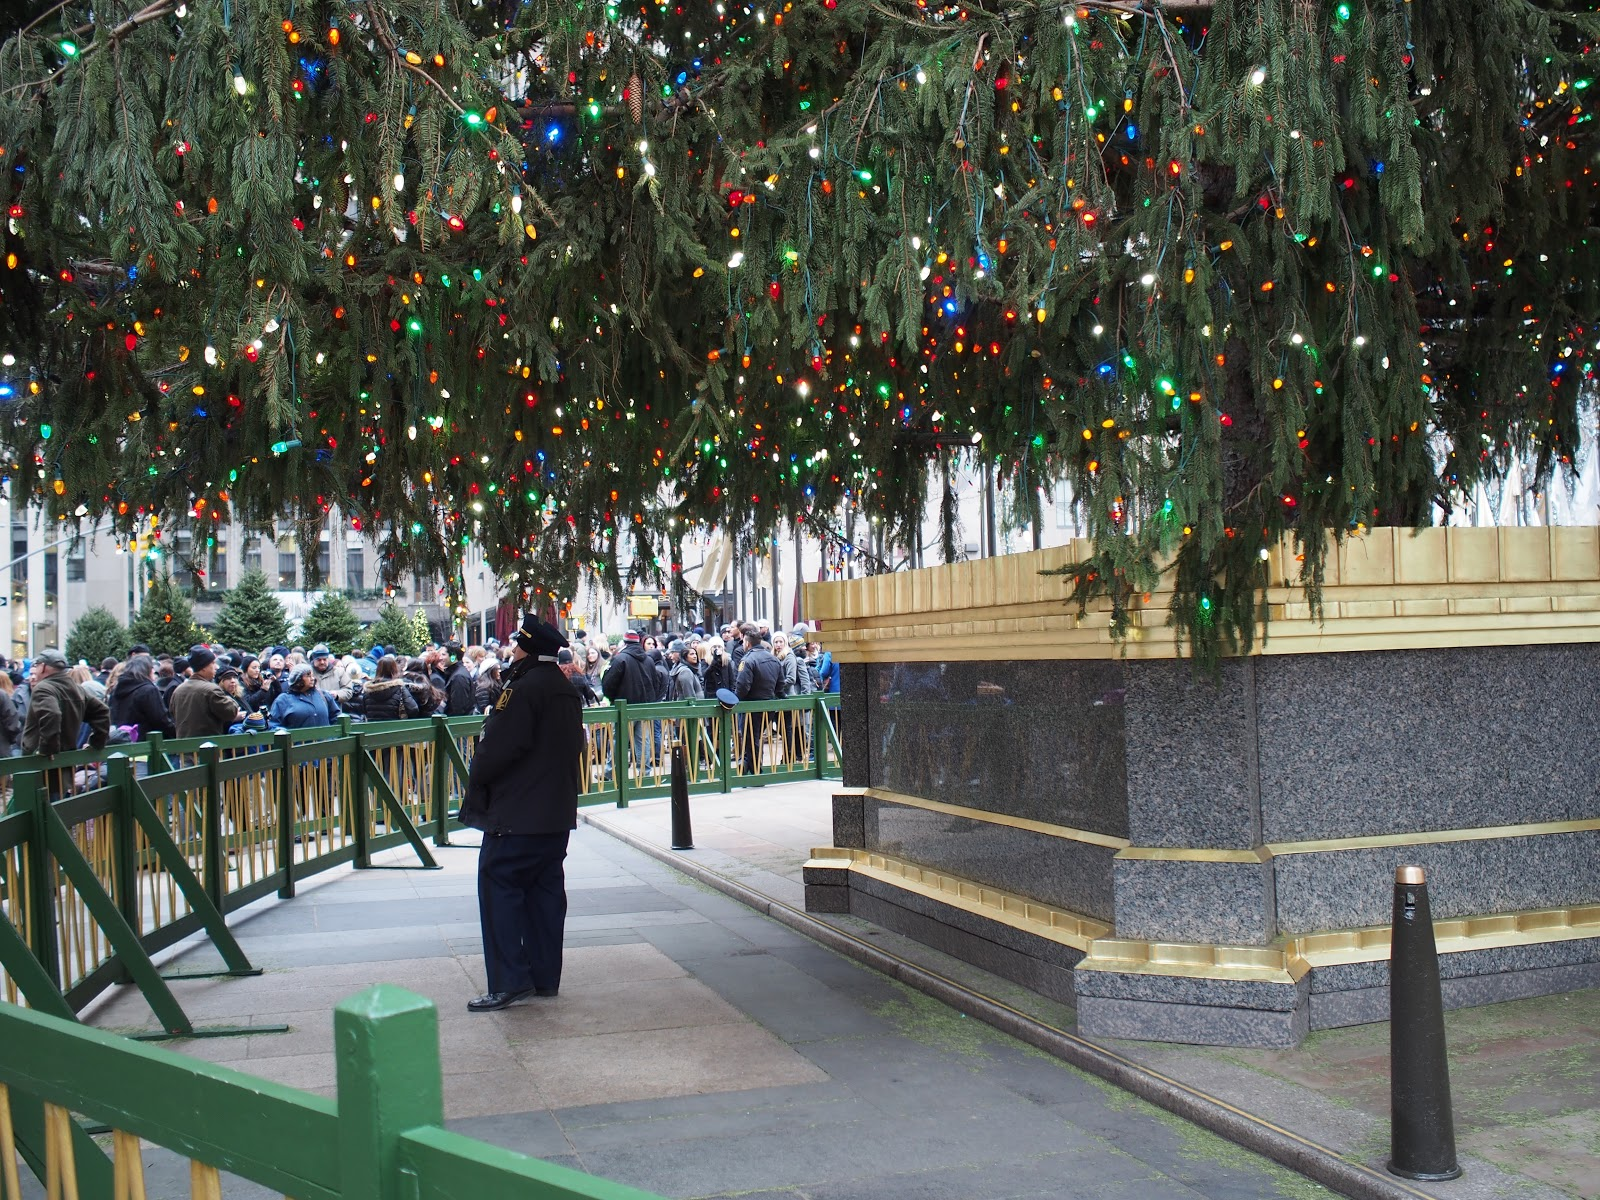 Tree Guard #treeguard  #holidays #holidaysinNYC #rockefellercenter #NYC ©2014 Nancy Lundebjerg